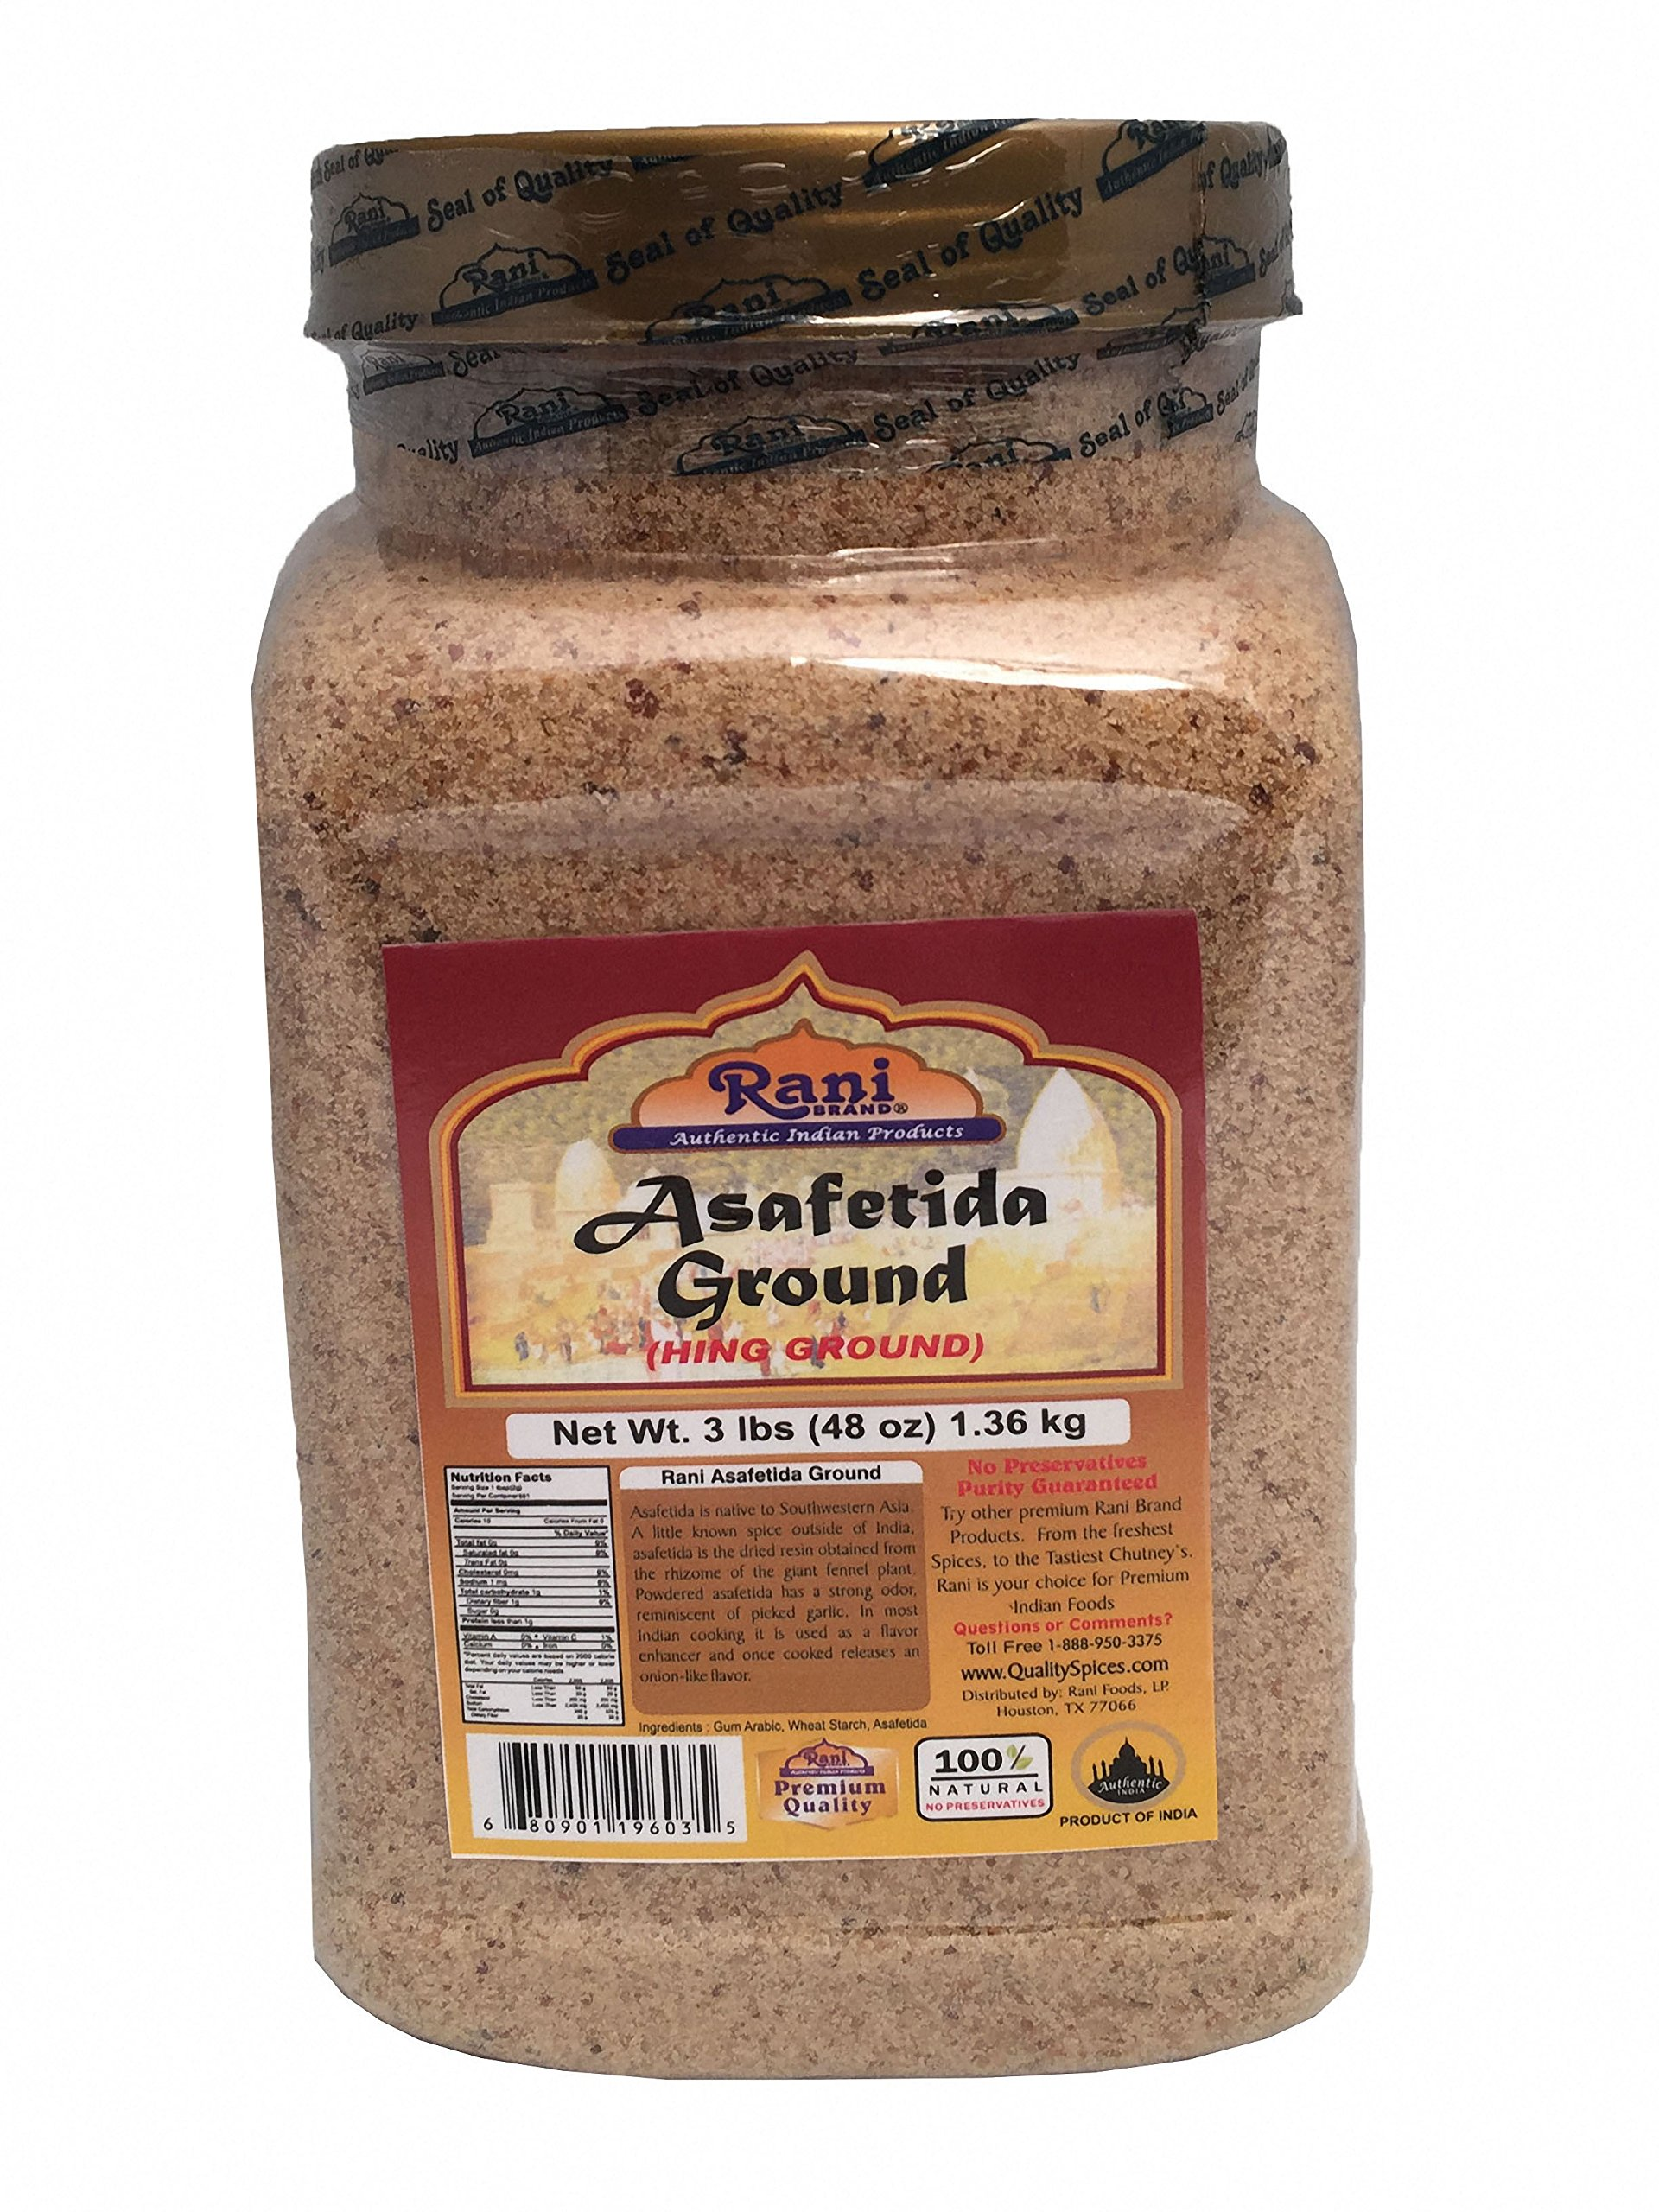 Rani Asafetida (Hing) Ground 3lbs (1.36kg Value Pack) Bulk ~ All Natural | Salt Free | Vegan | NON-GMO | Indian Spice